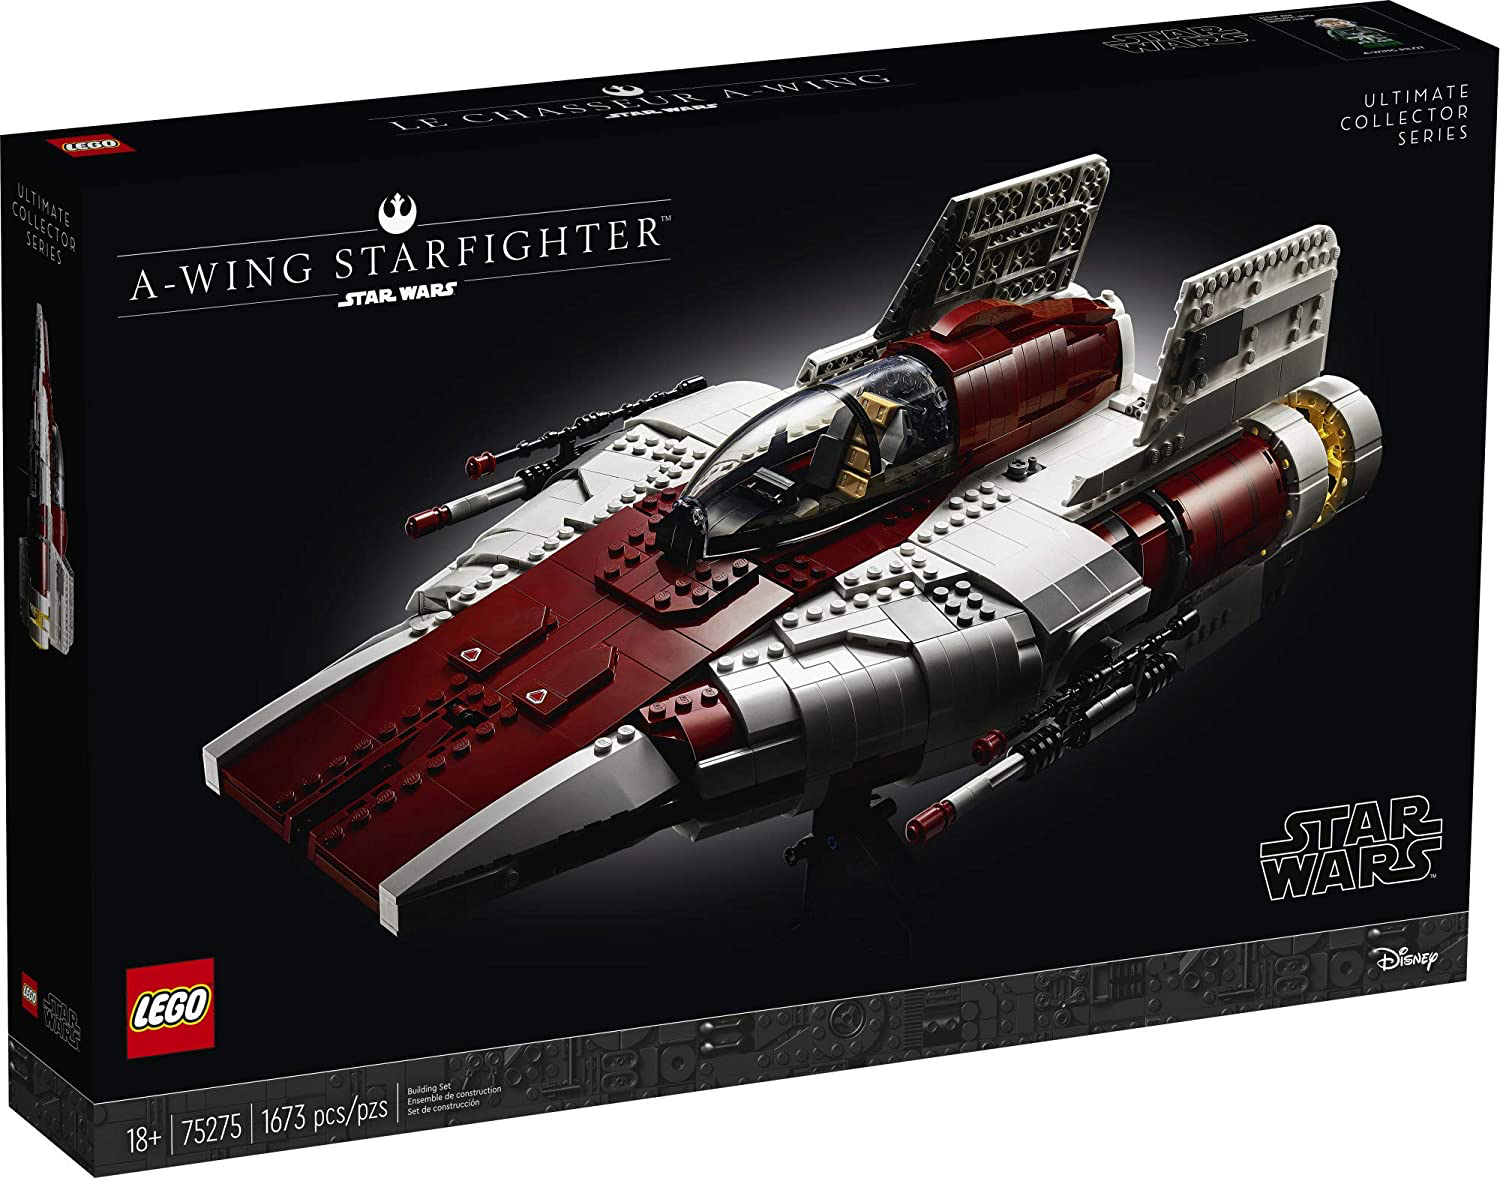 ROTJ A-Wing Starfighter Lego Set 1